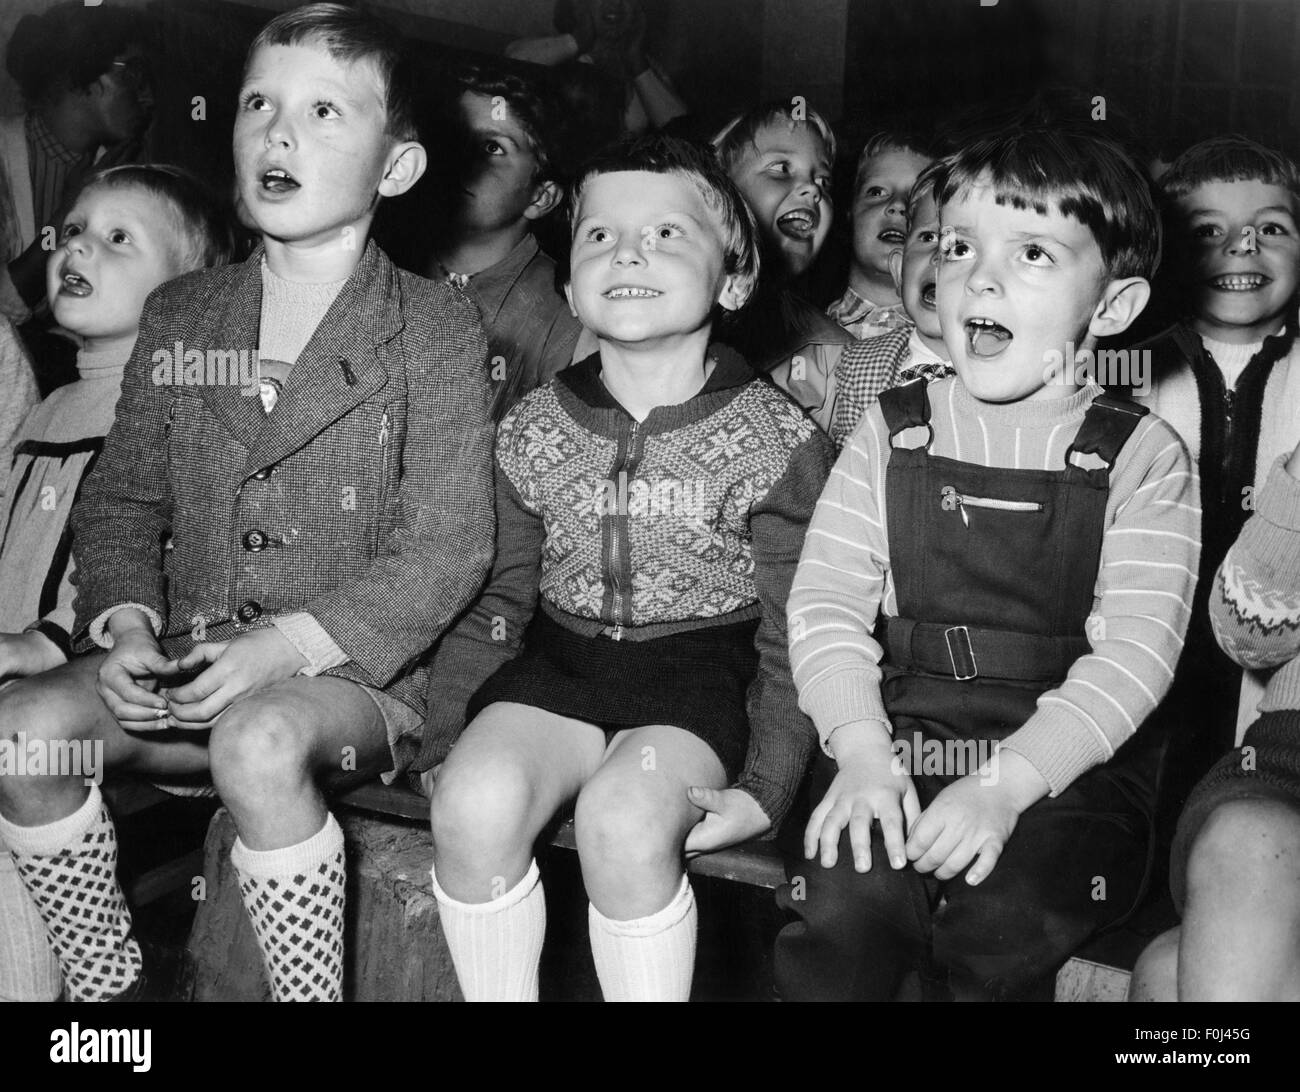 theatre / theater, audience, group of children following a performance of a Punch and Judy show, 1950s, Additional Stock Photo